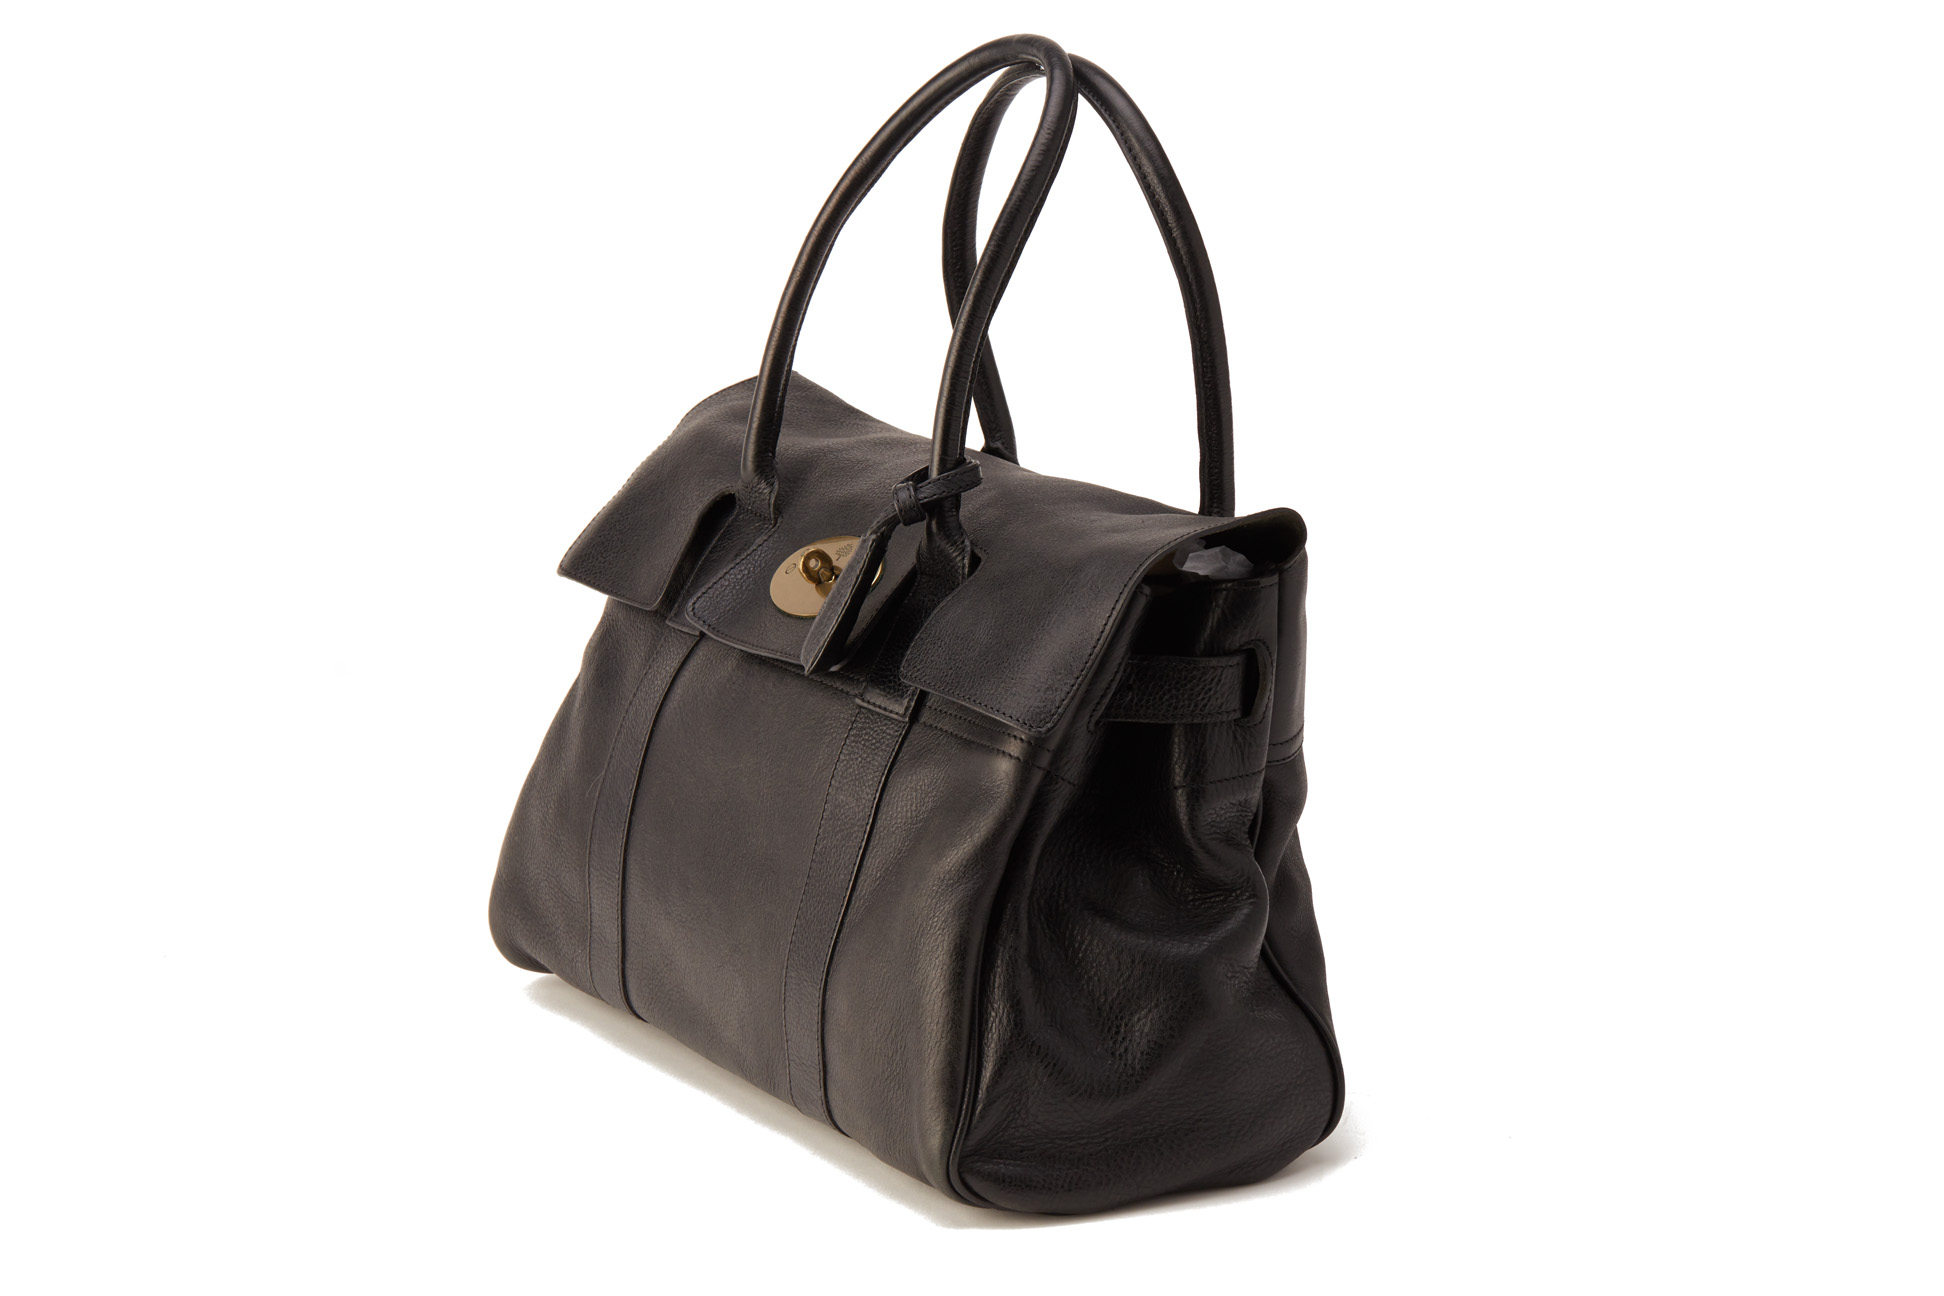 A MULBERRY BLACK BAYSWATER LEATHER TOTE BAG - Image 3 of 4